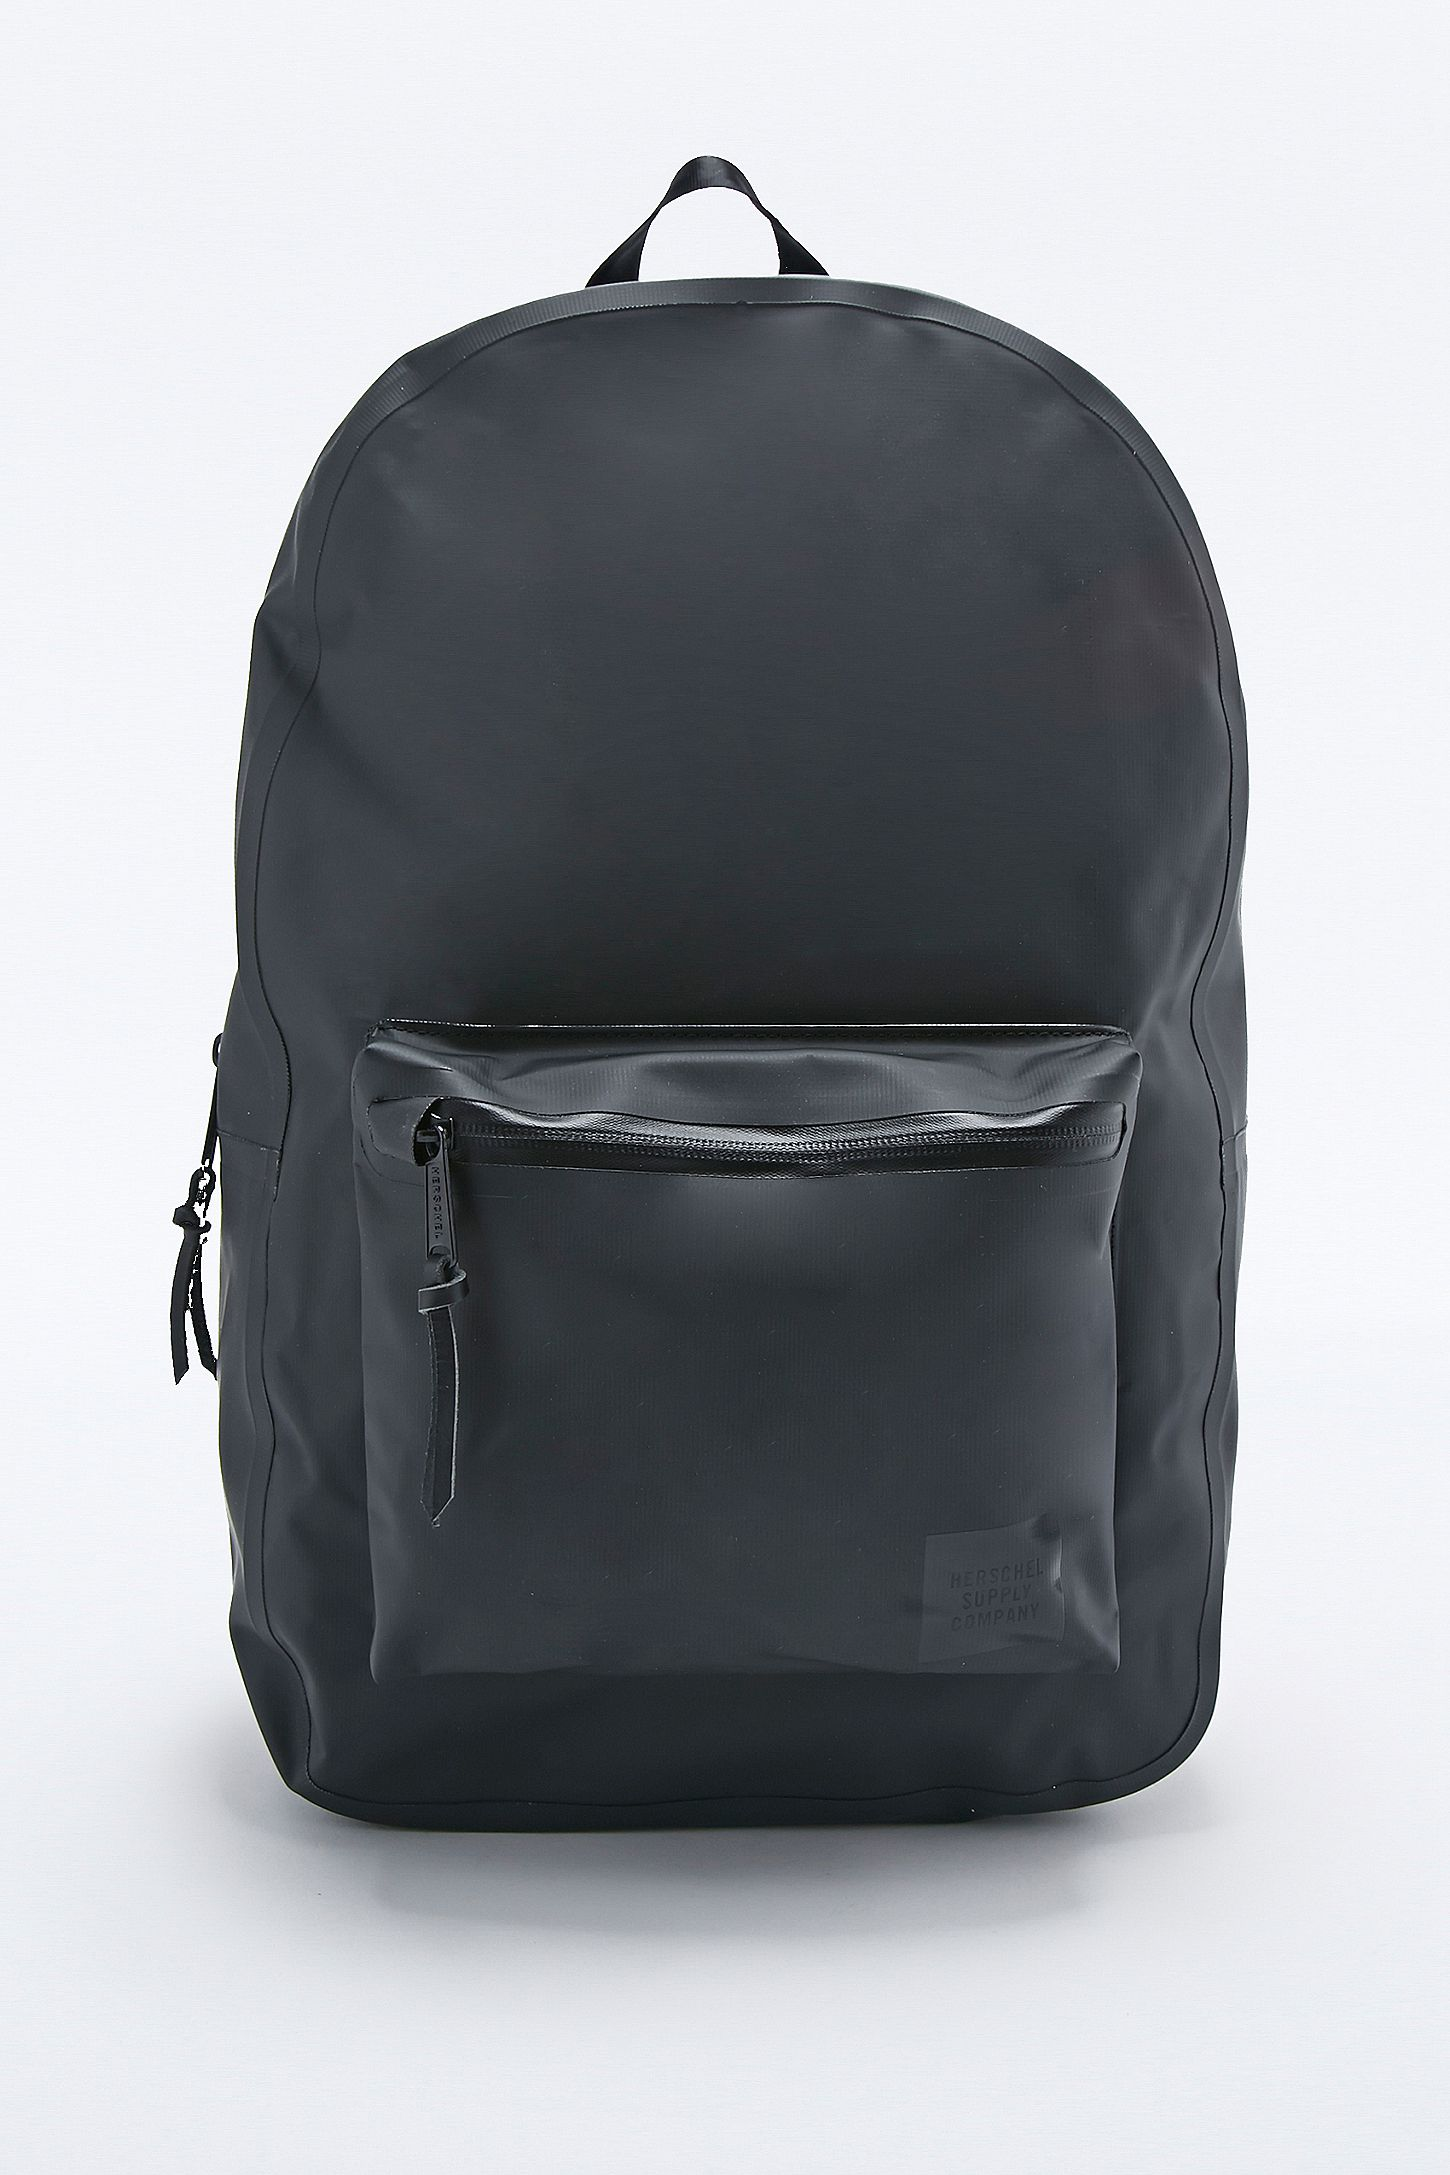 46bf30186f6 Herschel Supply co. Settlement Studio Tarpaulin Backpack in Black. Click on  image to zoom. Hover to zoom. Double Tap to Zoom